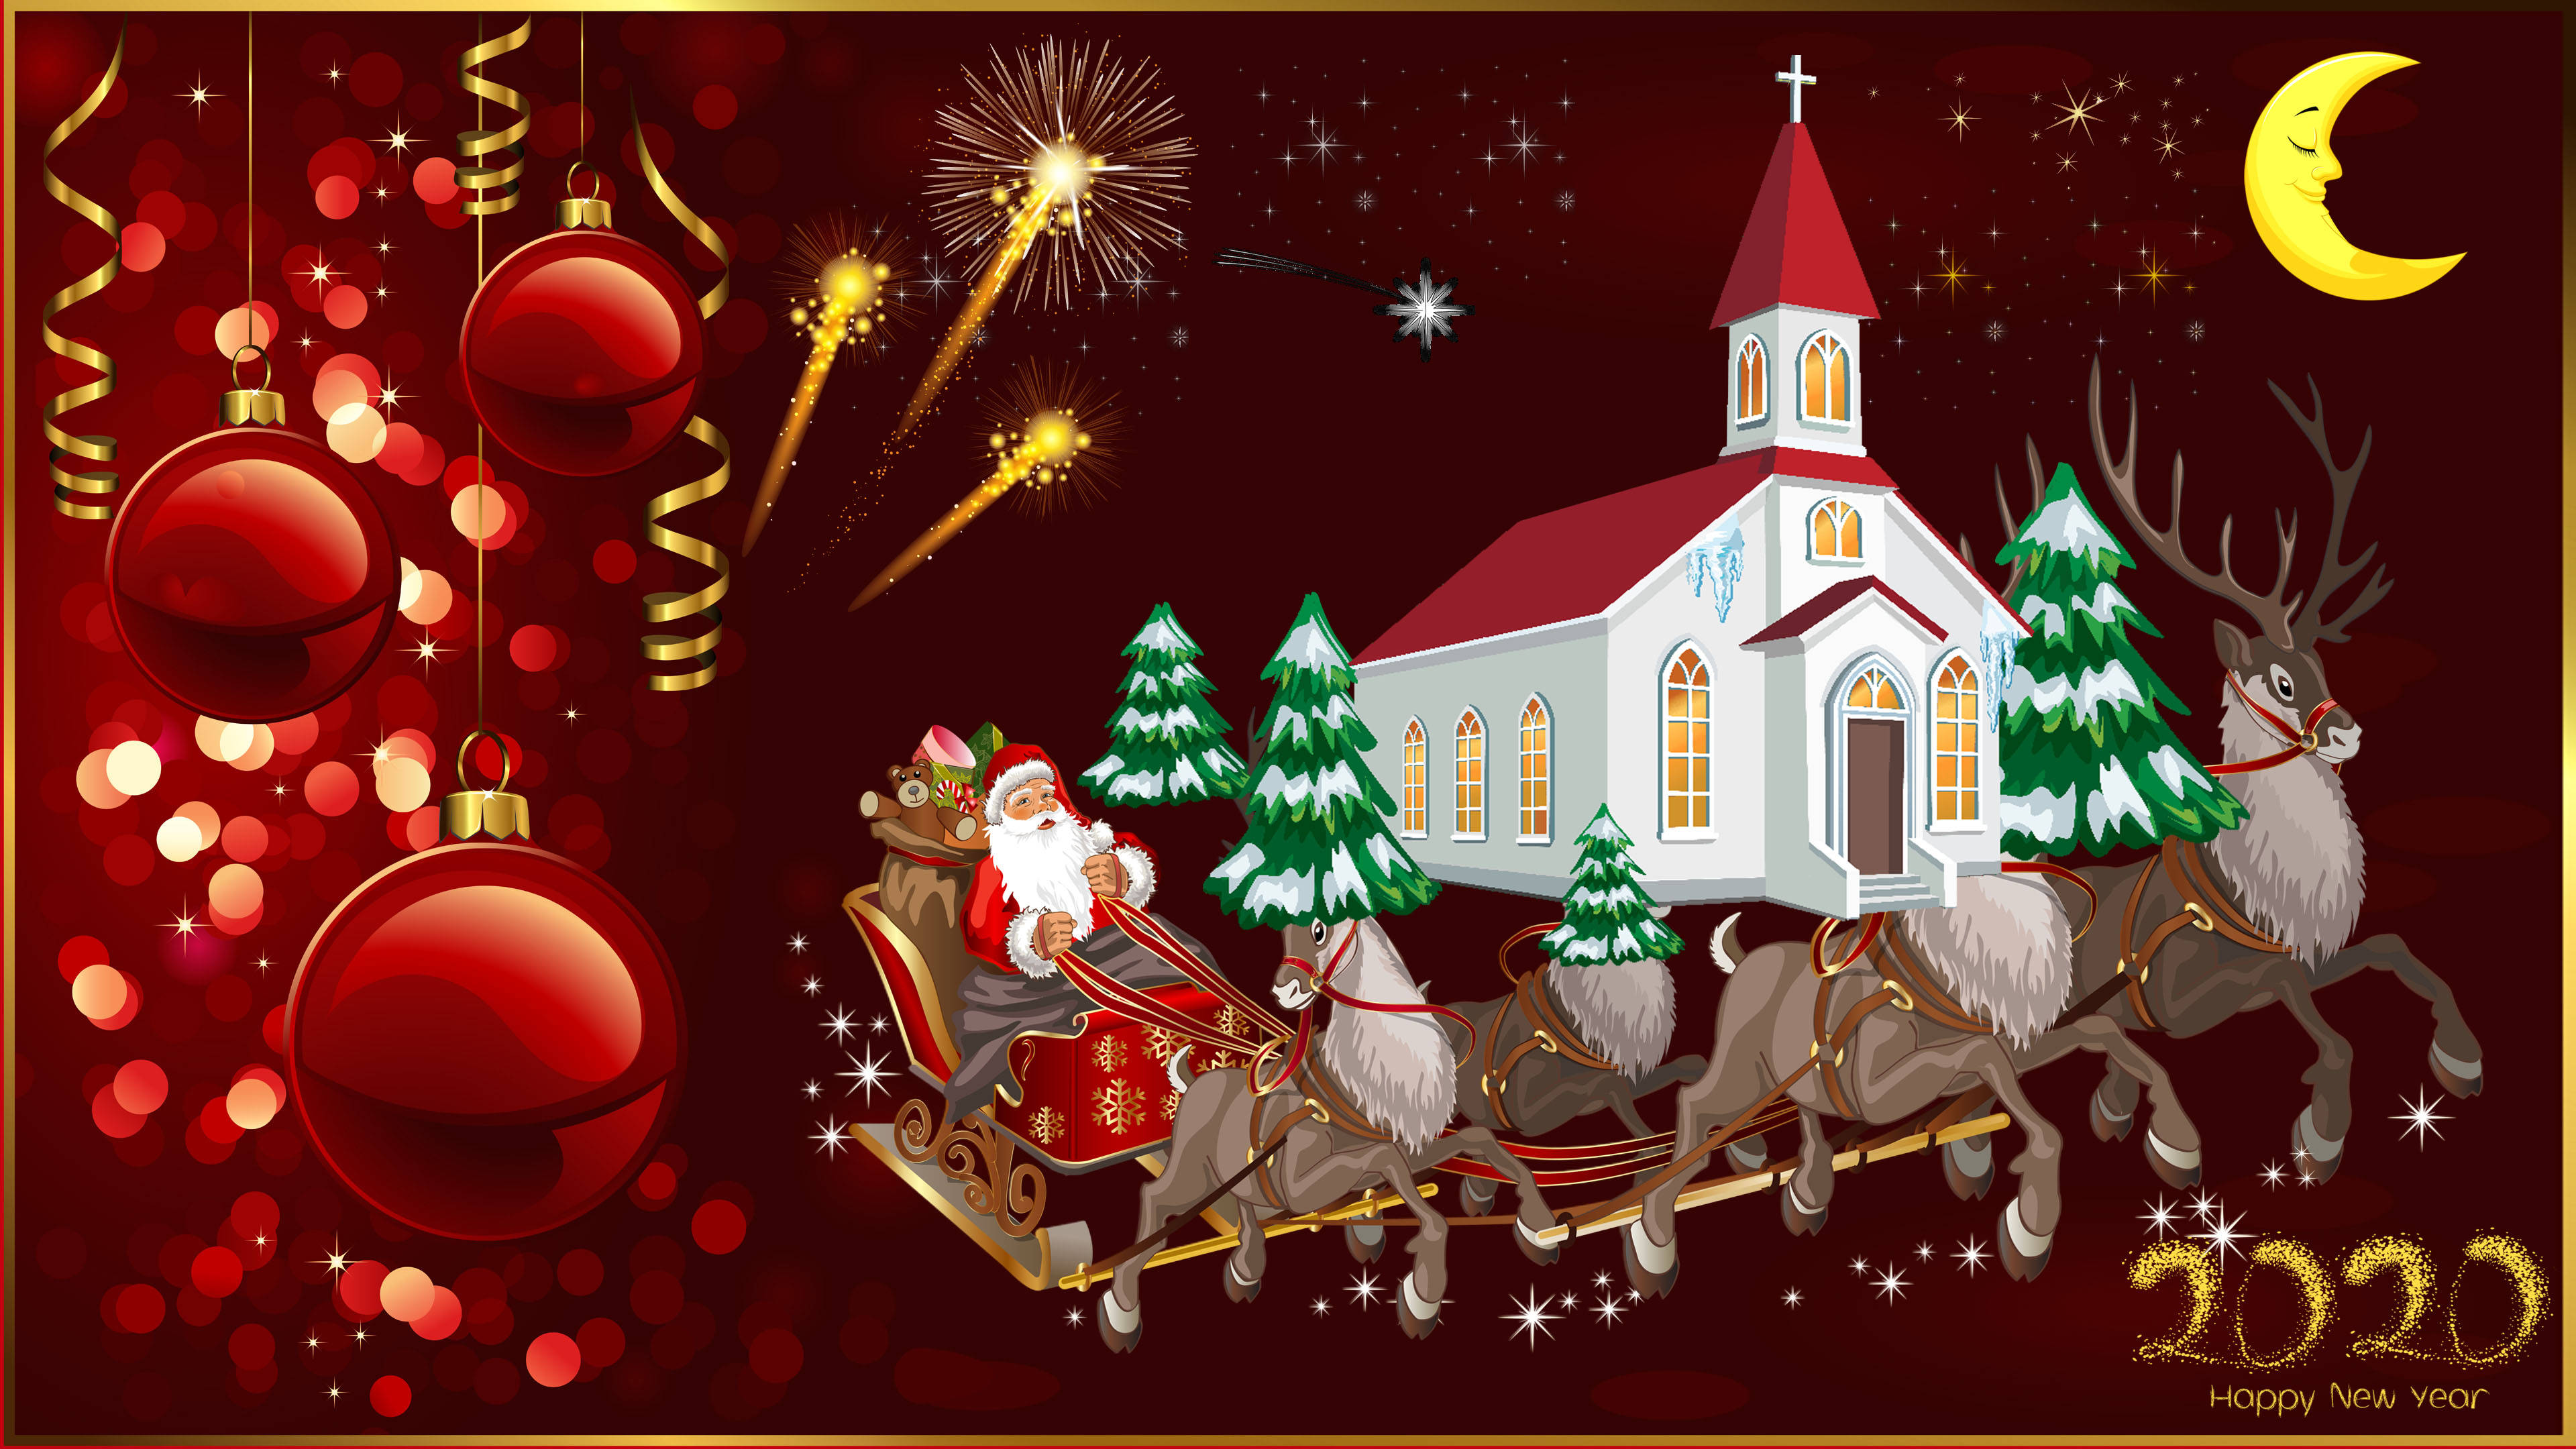 Happy New Year 2020 Merry Christmas Christmas Greeting Card Santa 3840x2160